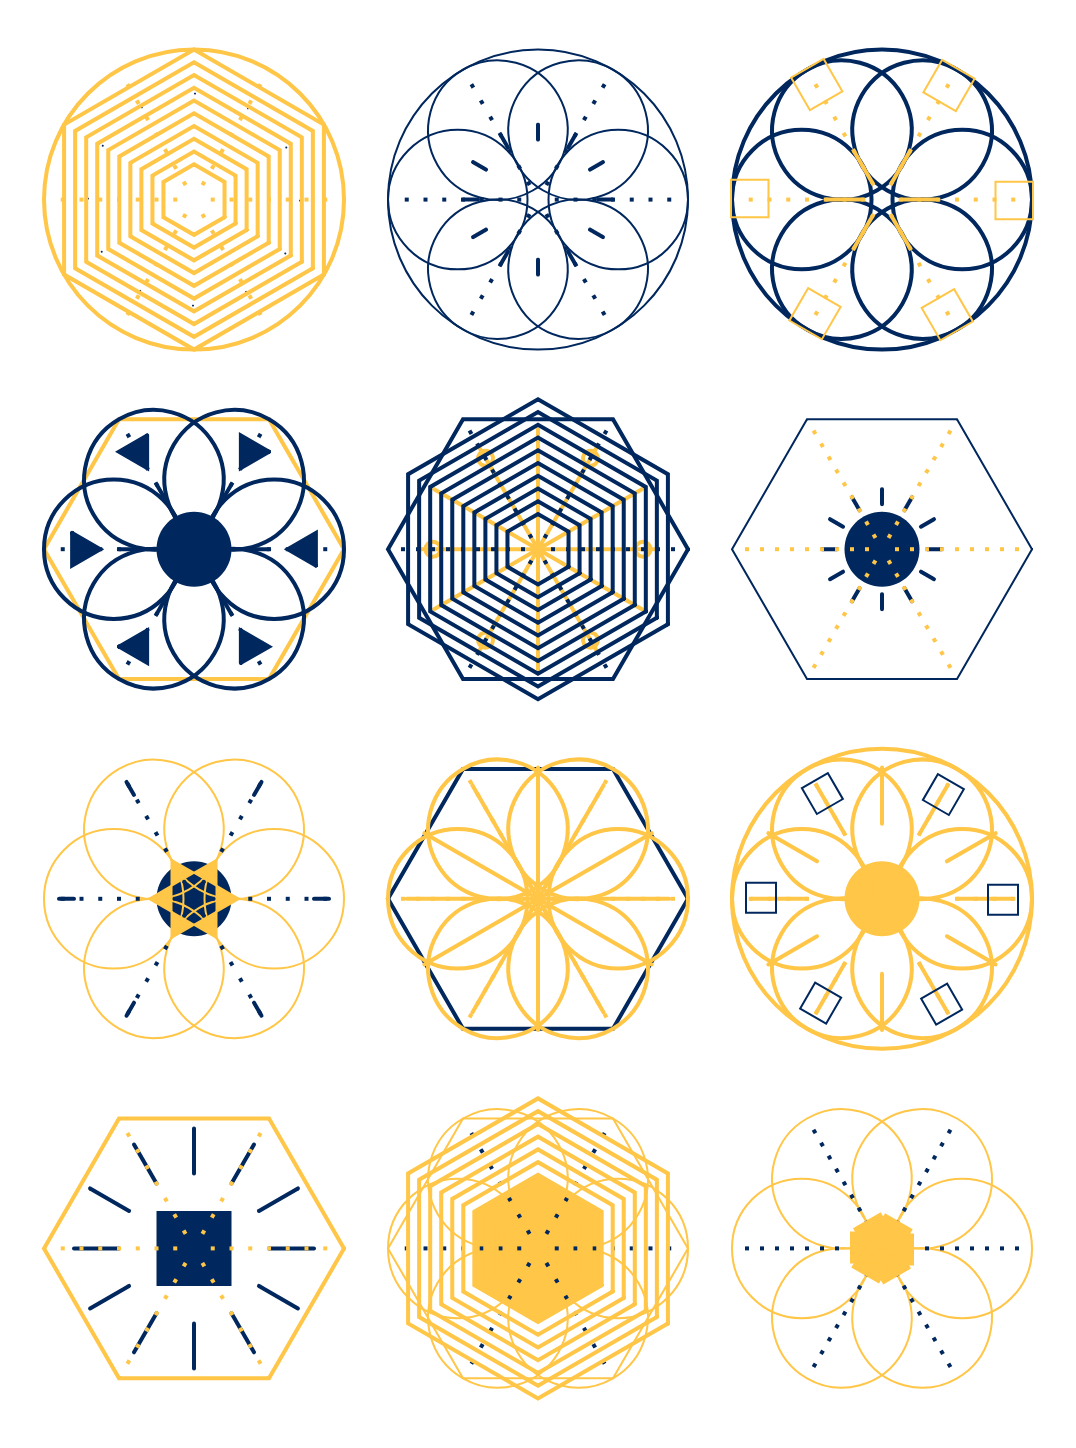 12 crystals made by a generative design system on a 3×4 grid